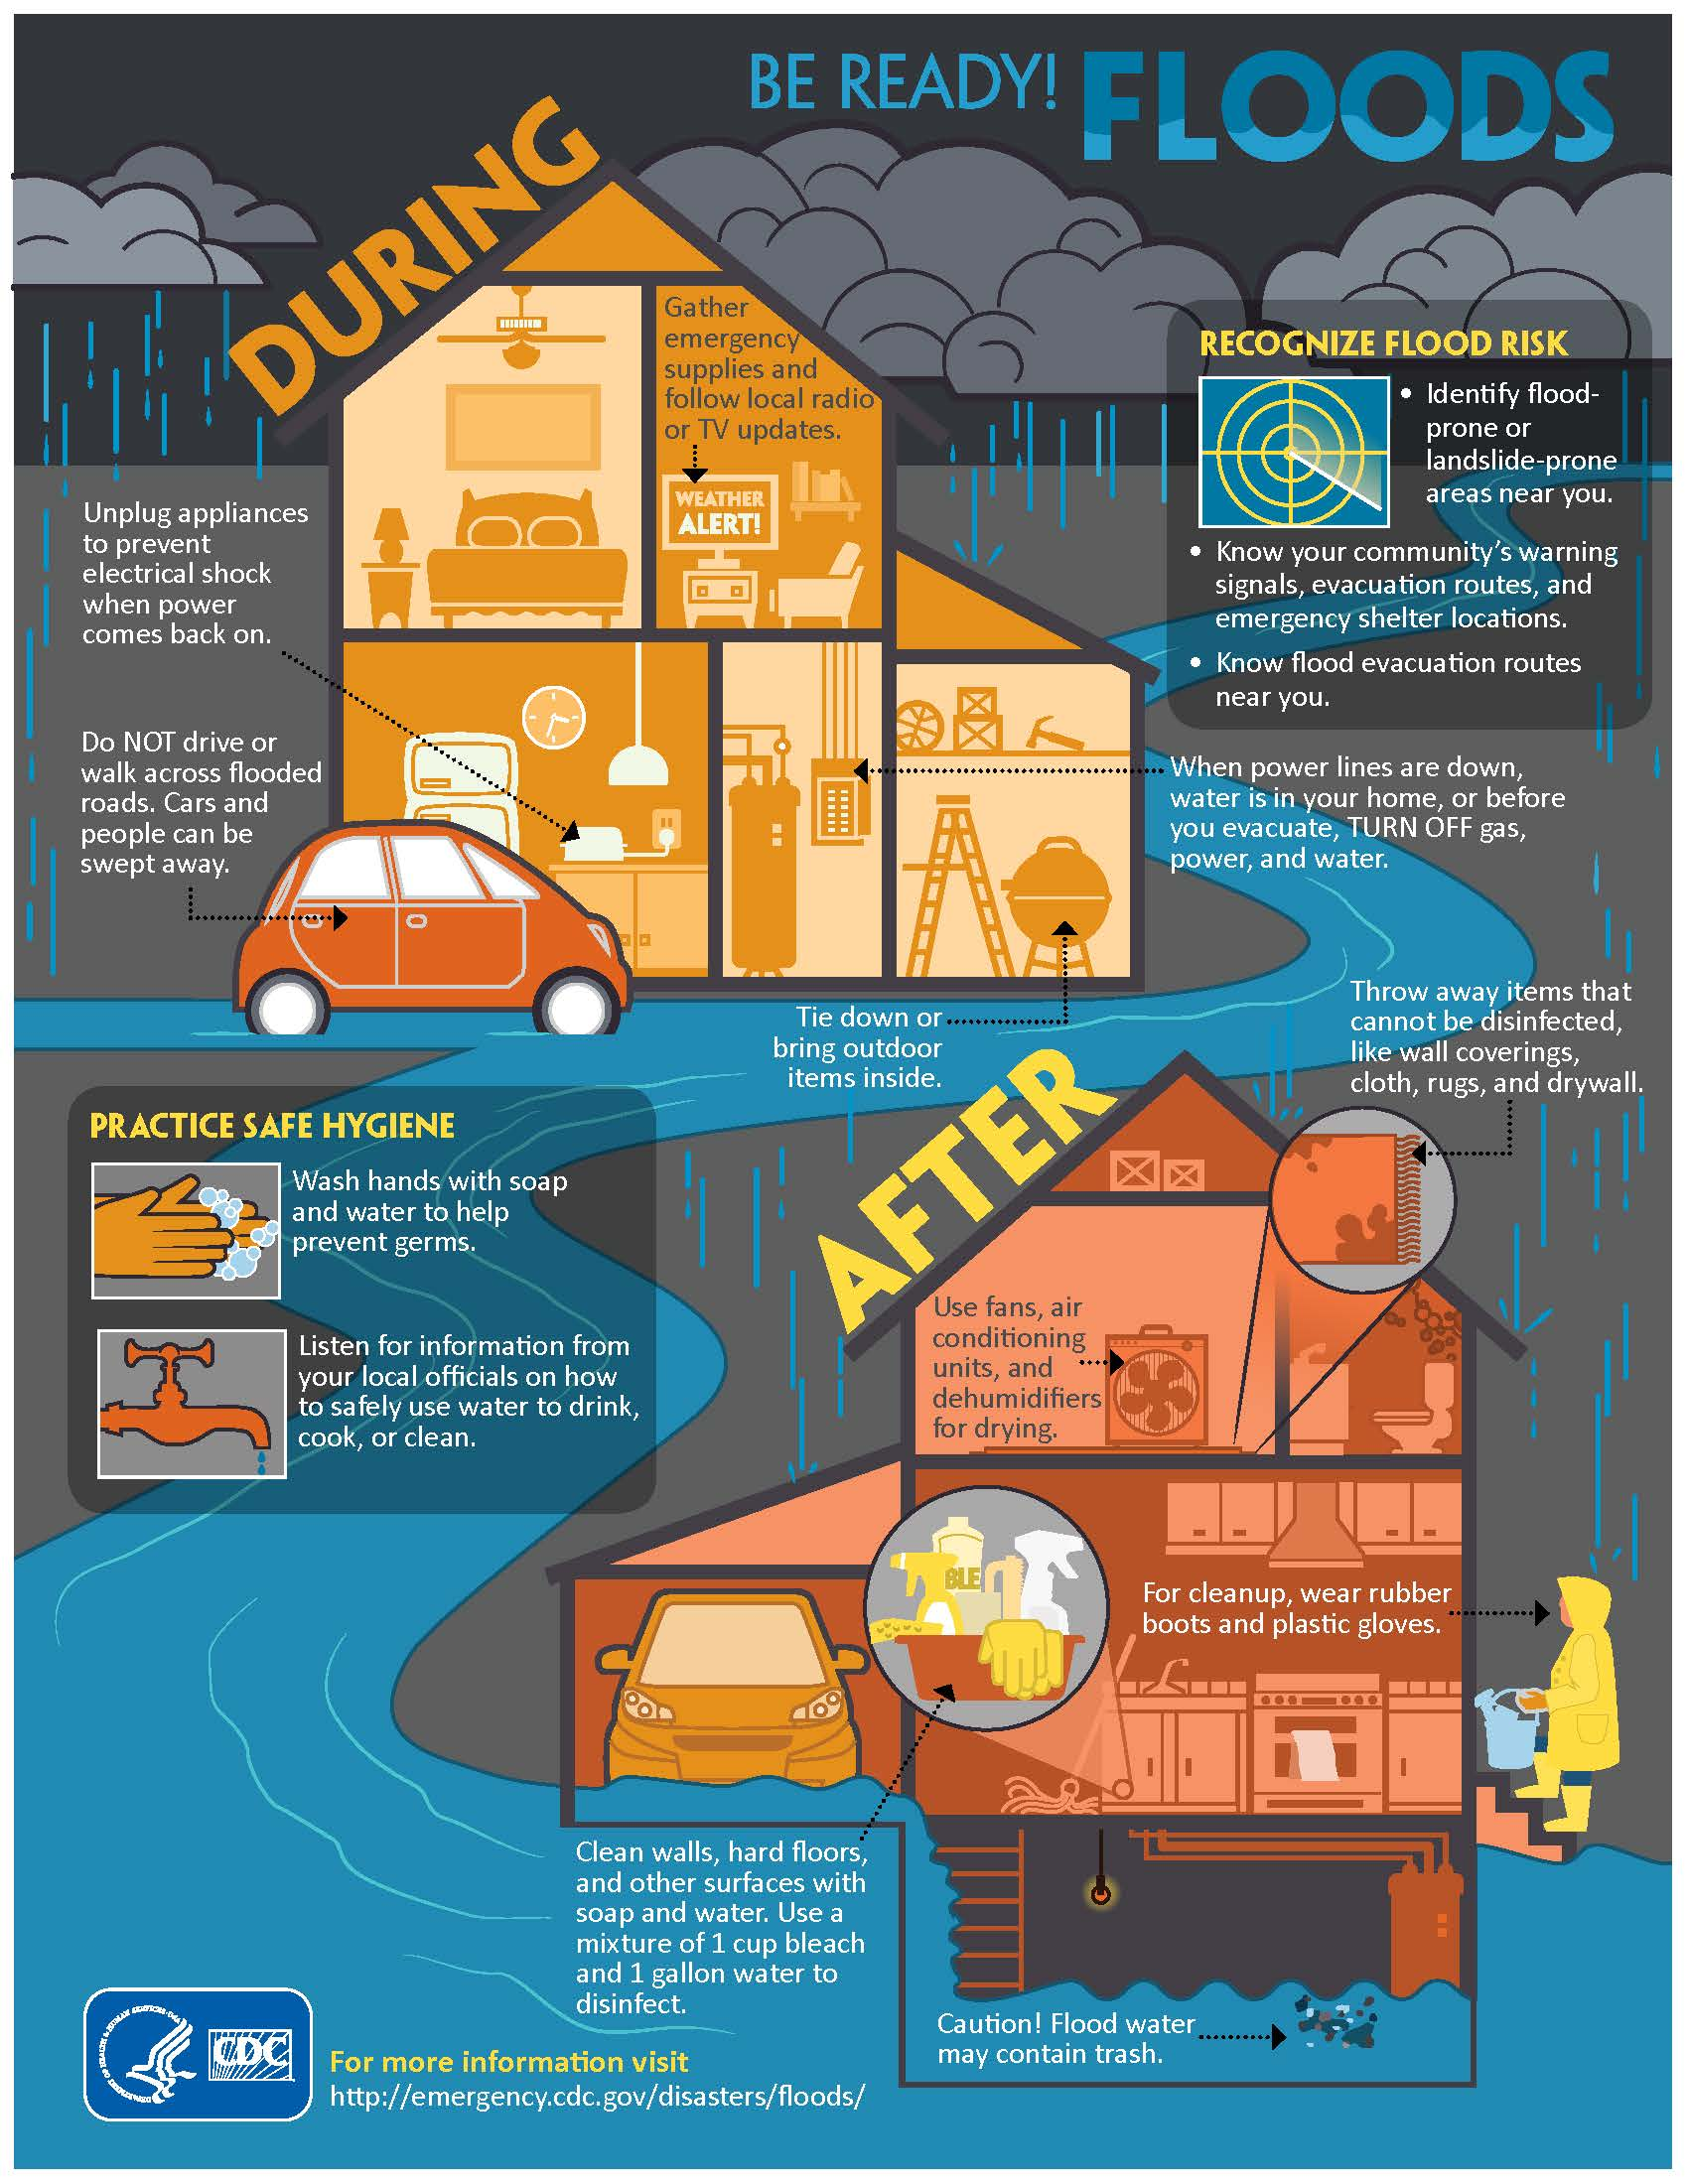 CDC Infographic - beready_floods